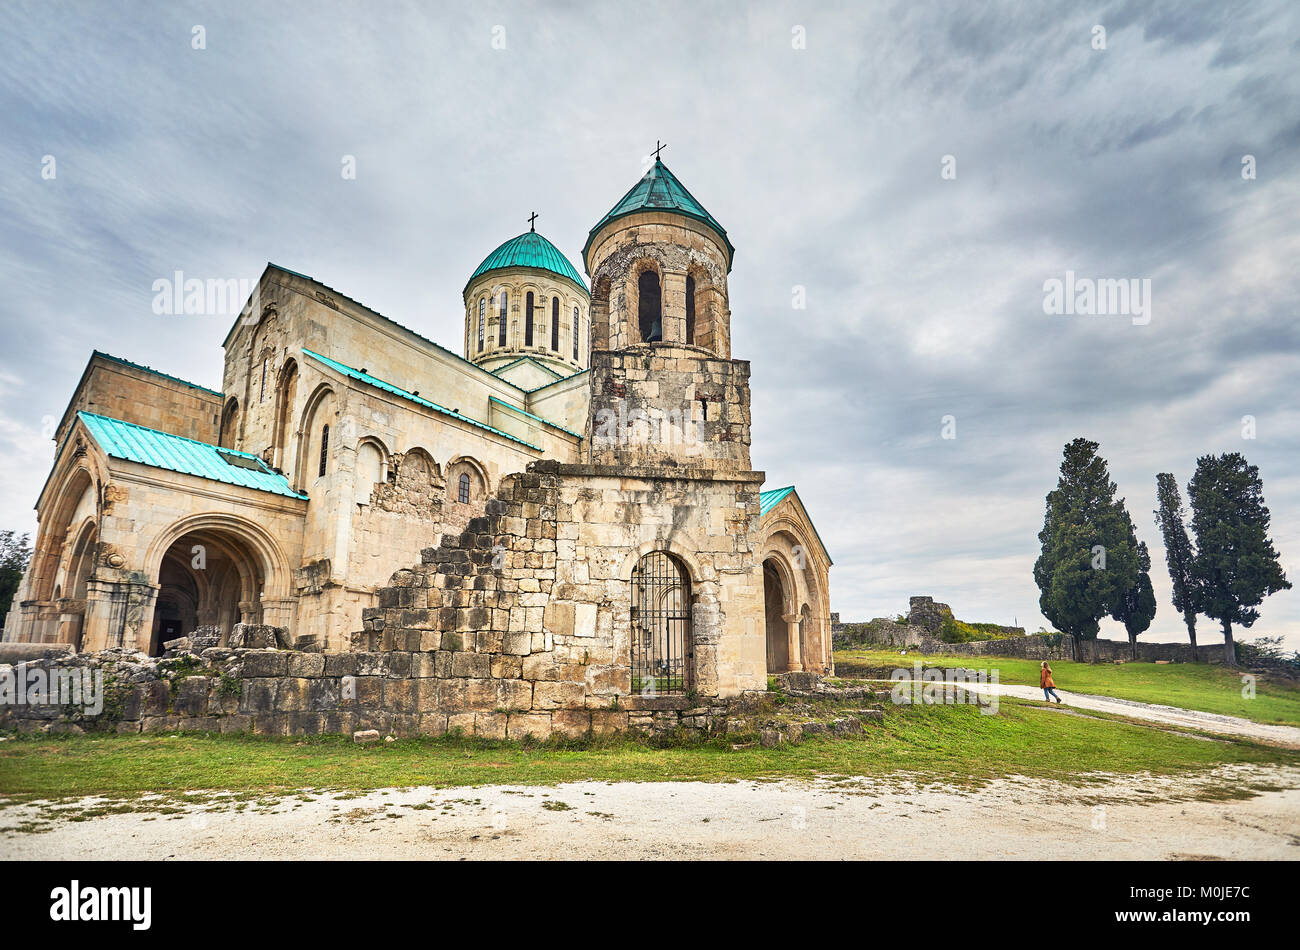 Woman walking to the Chapel tower of Bagrati church at overcast sky in Kutaisi, Georgia - Stock Image